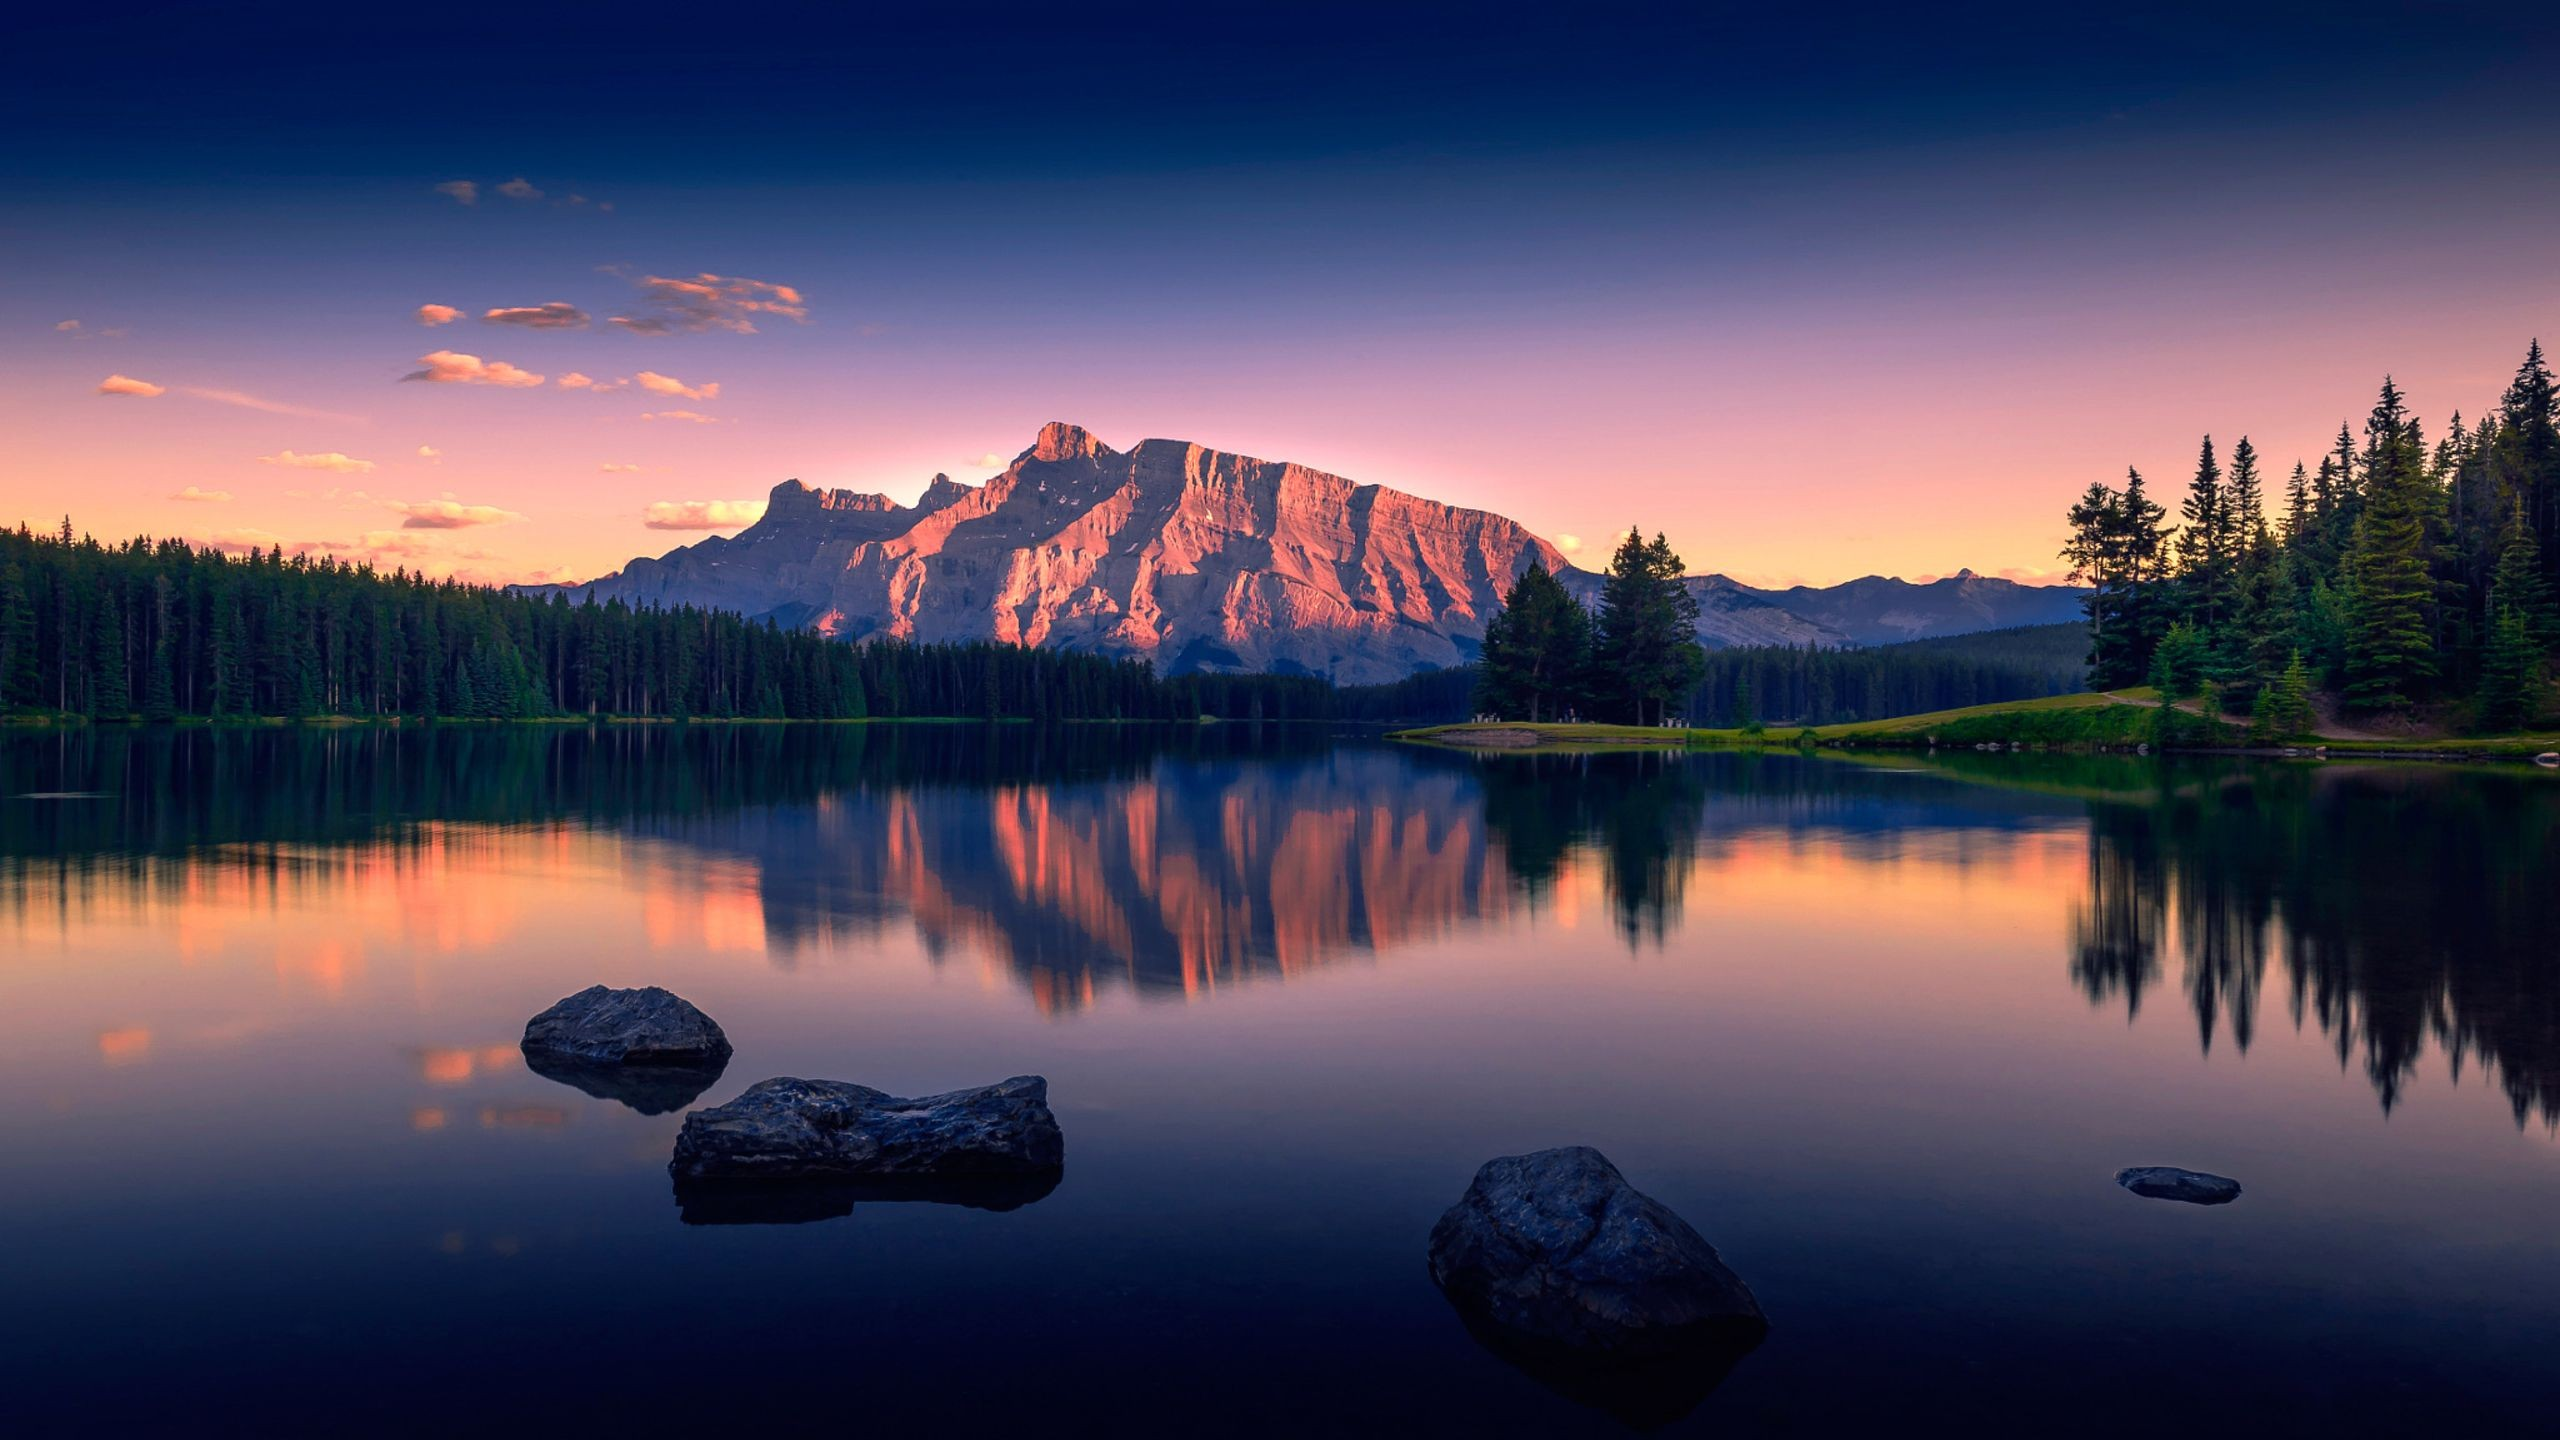 48 2560x1440 wallpapers 183�� download free amazing full hd